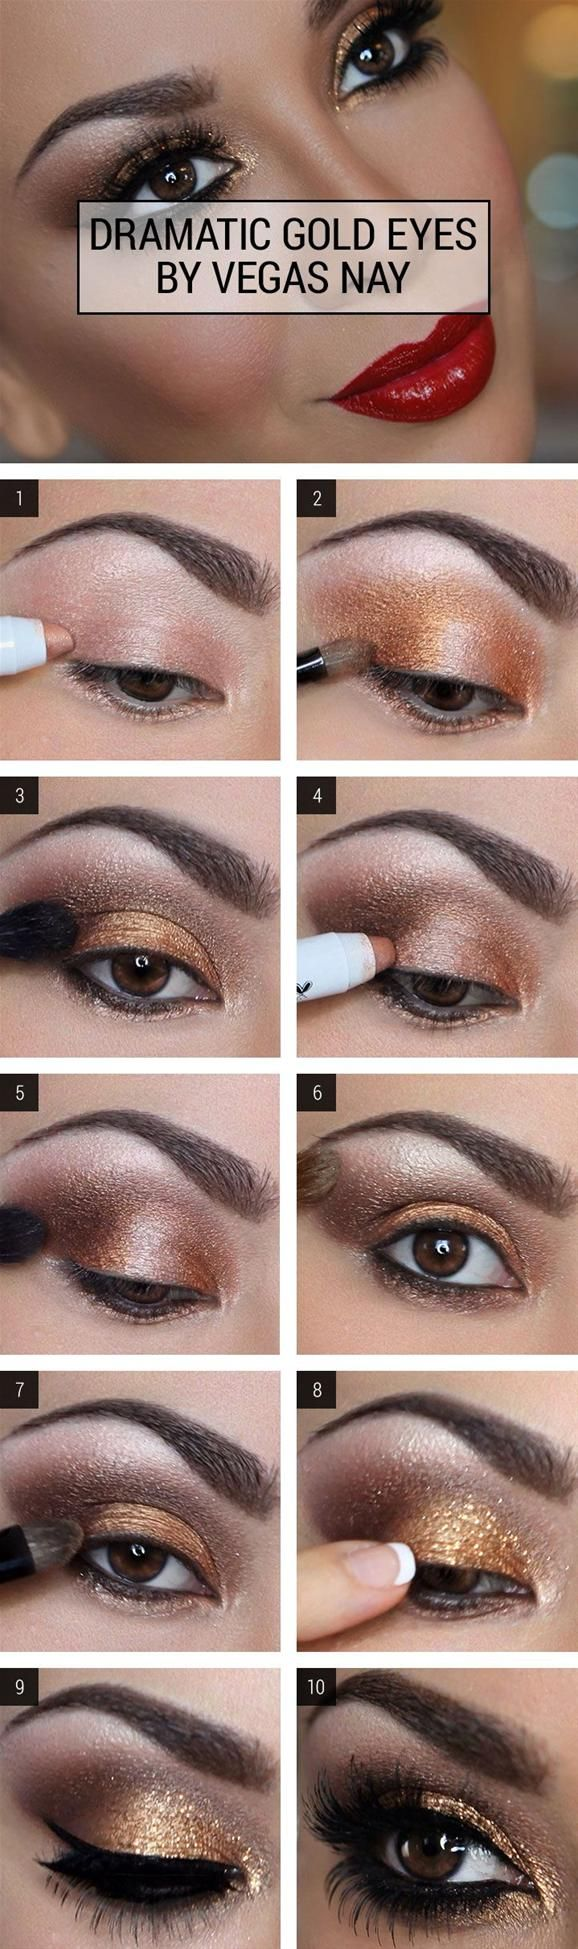 Best Smokey Eye Make-up Step By Step Tutorial and Ideas with Pictures (11)